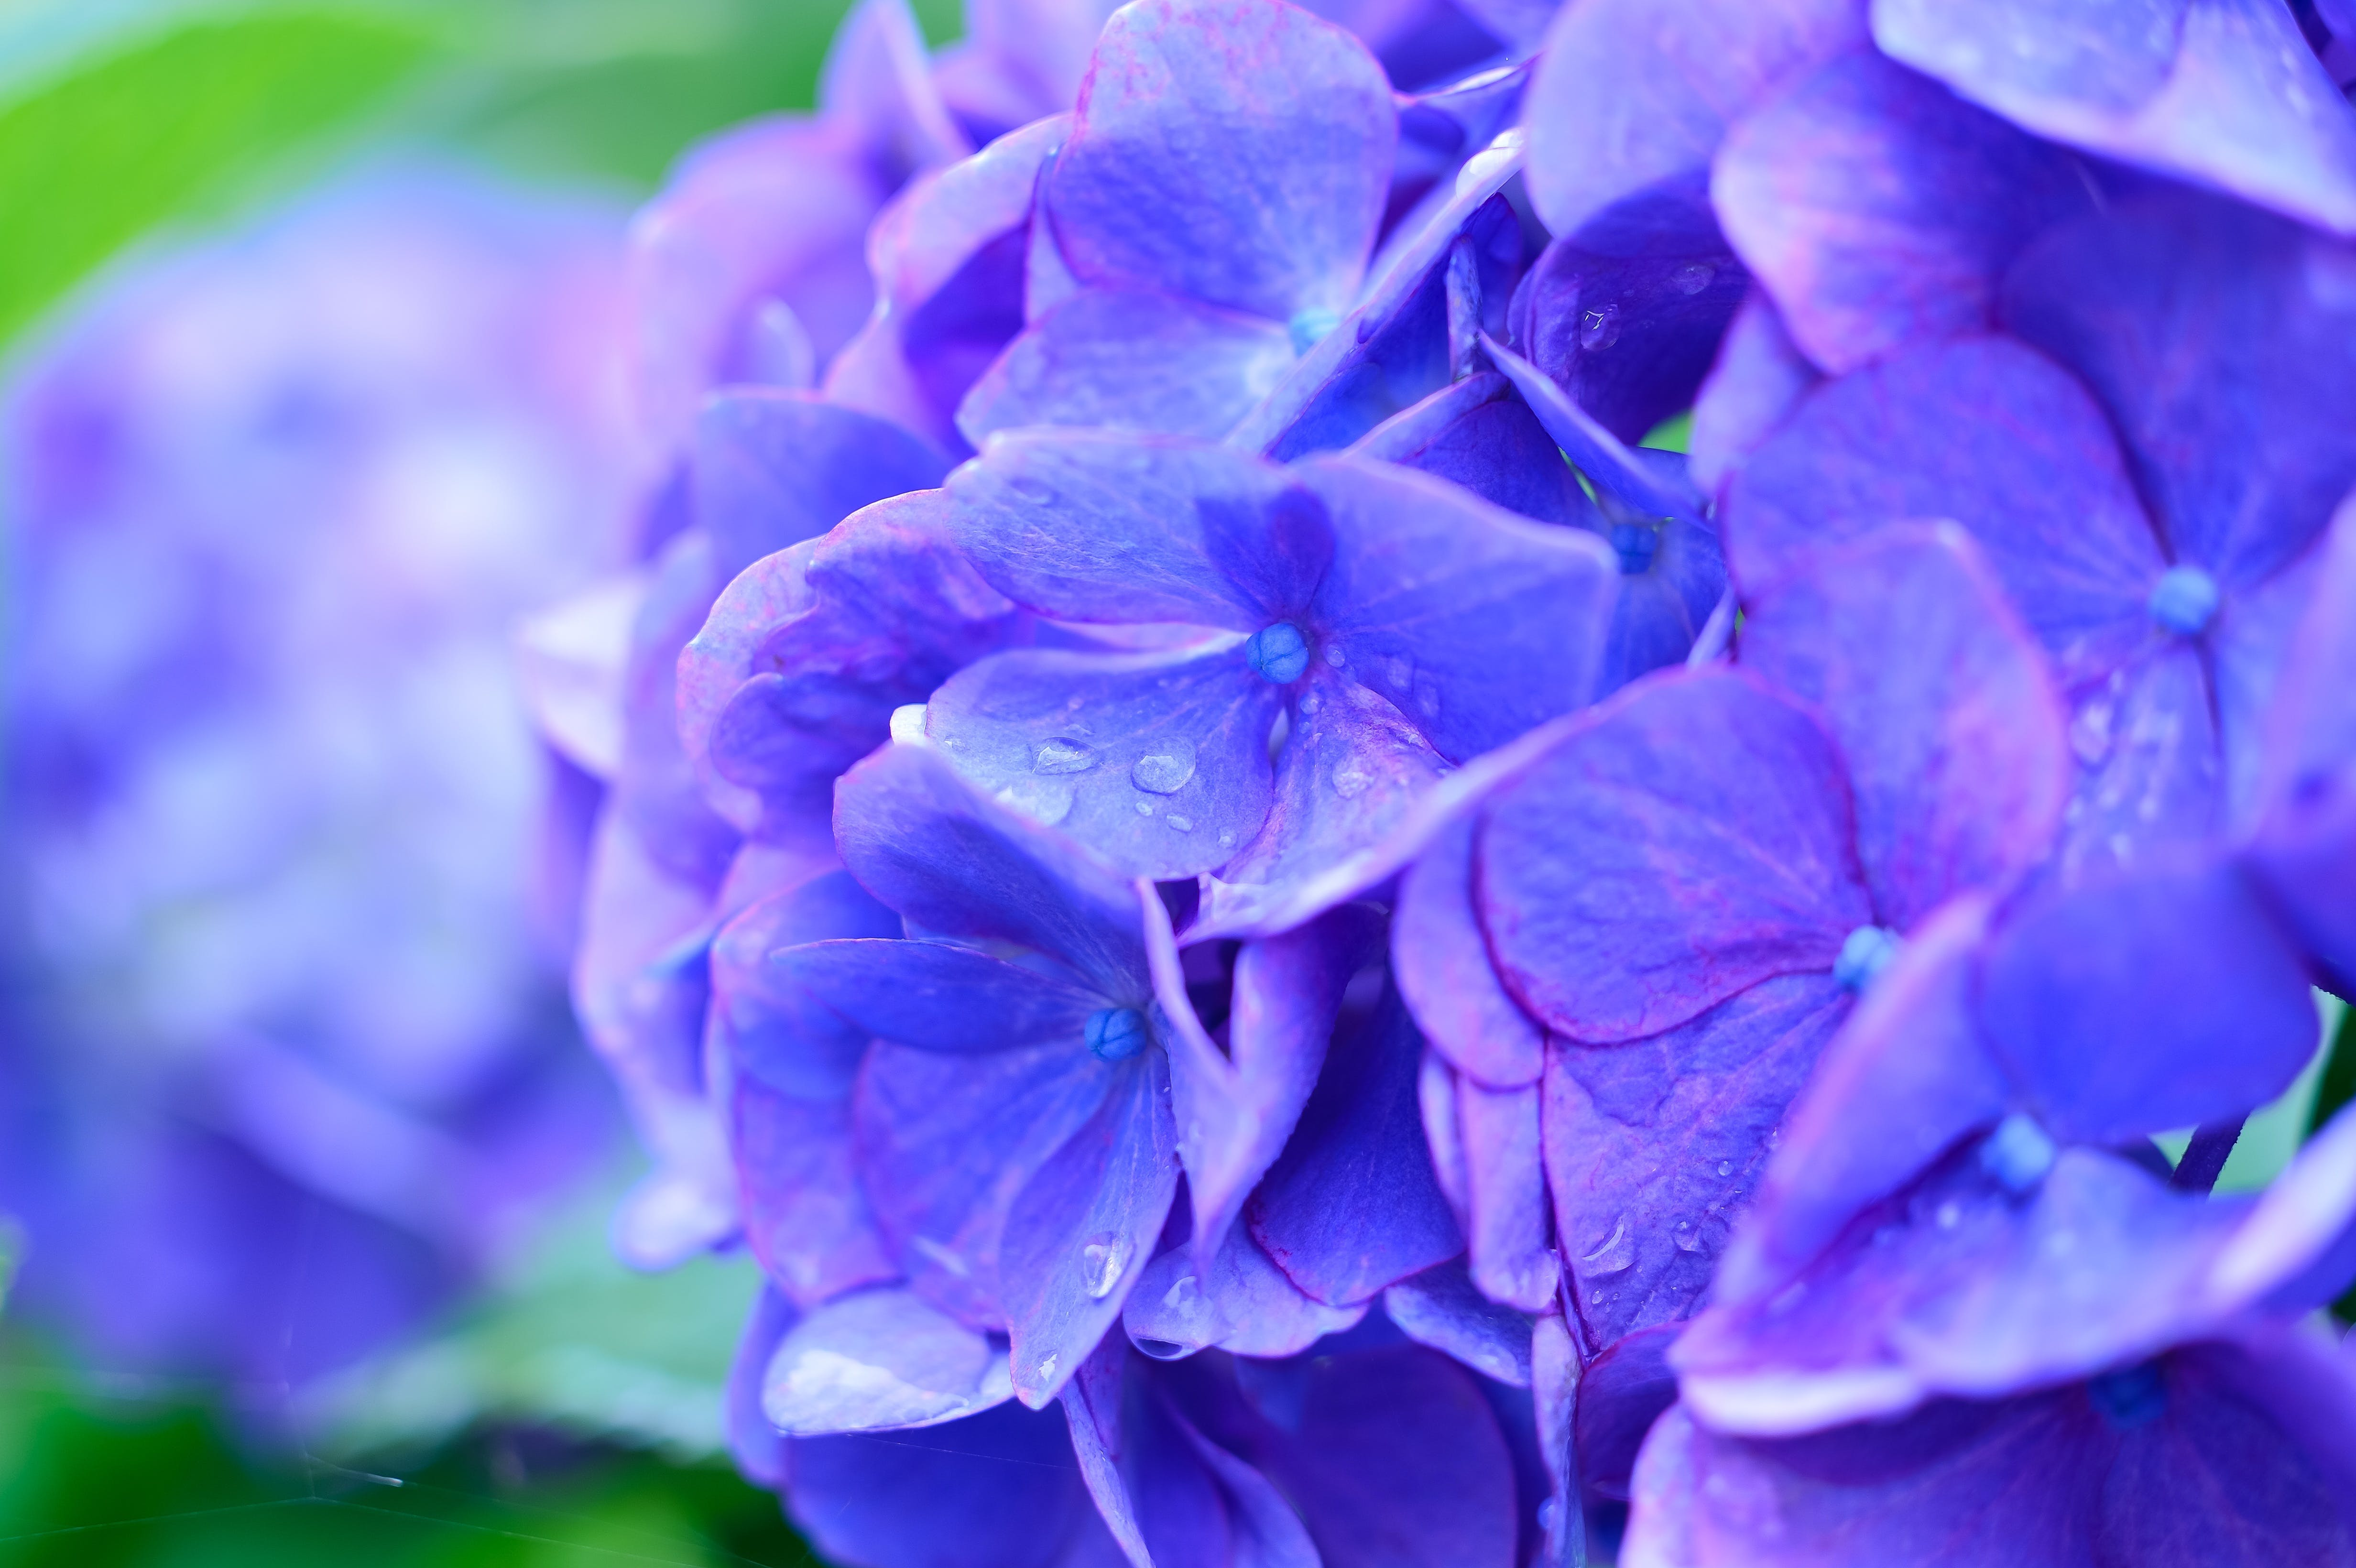 Free stock photo of nature, flowers, blue, summer